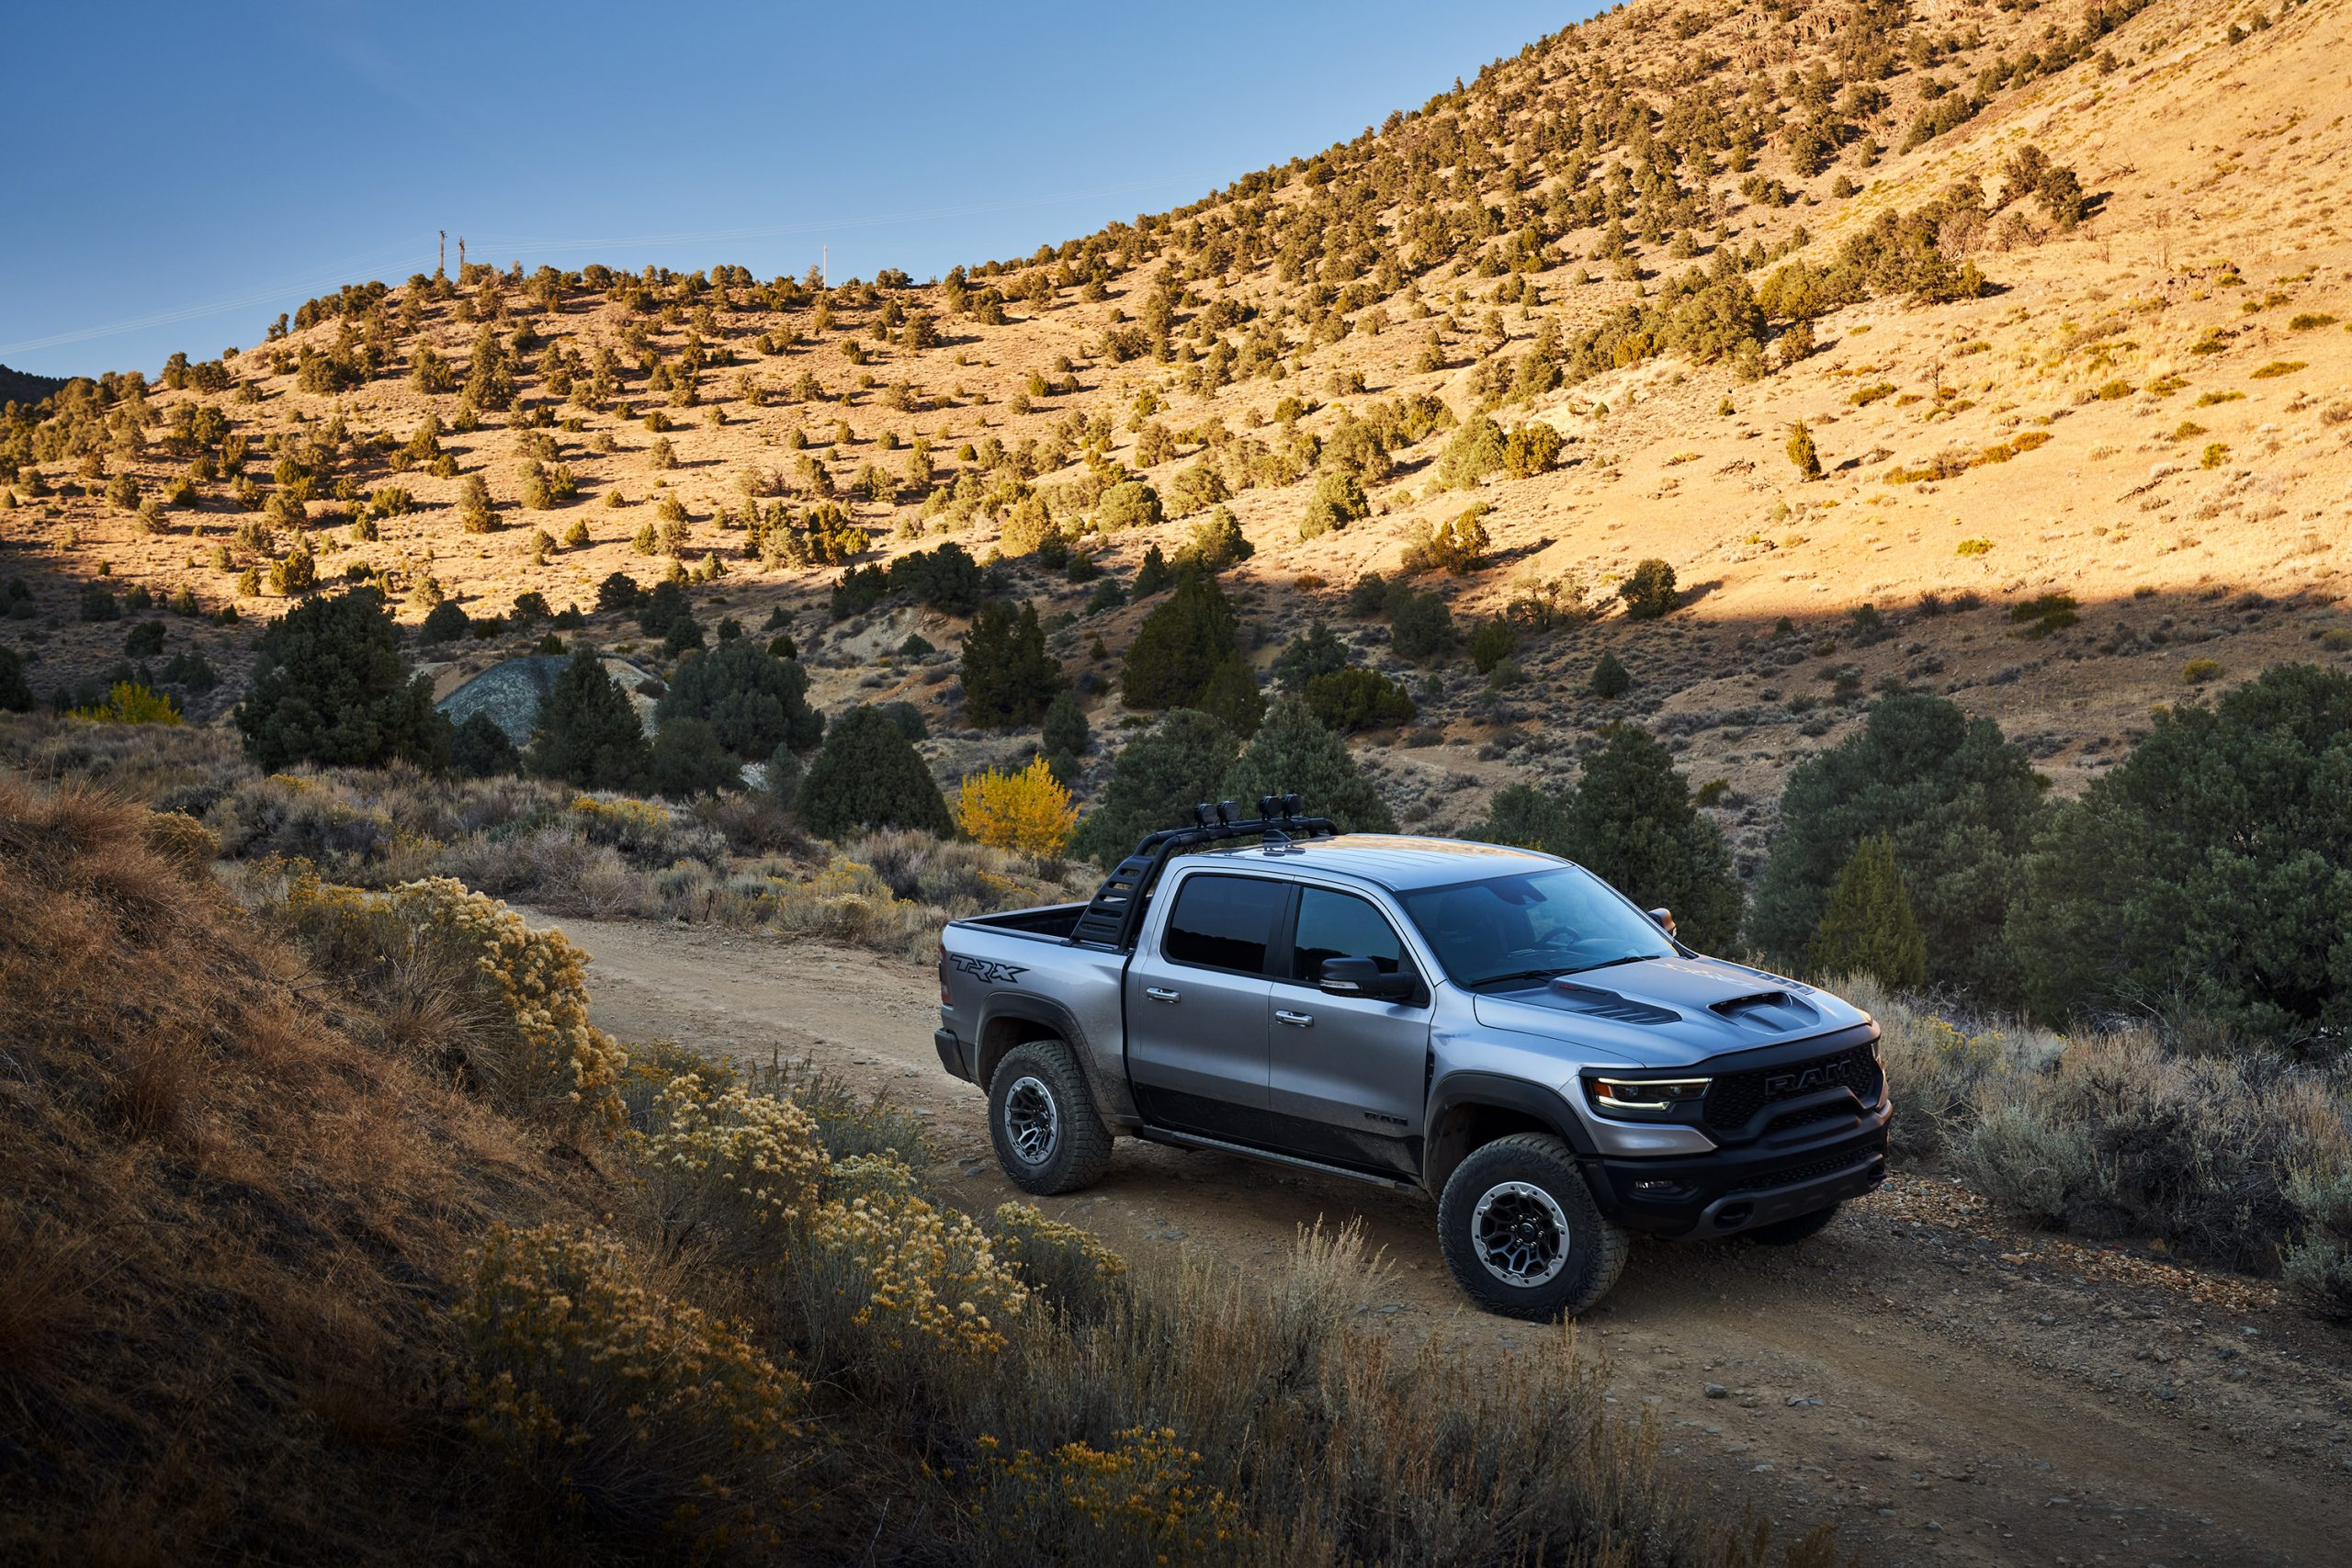 2021 Ram 1500 TRX front three-quarter on mountain pass trail